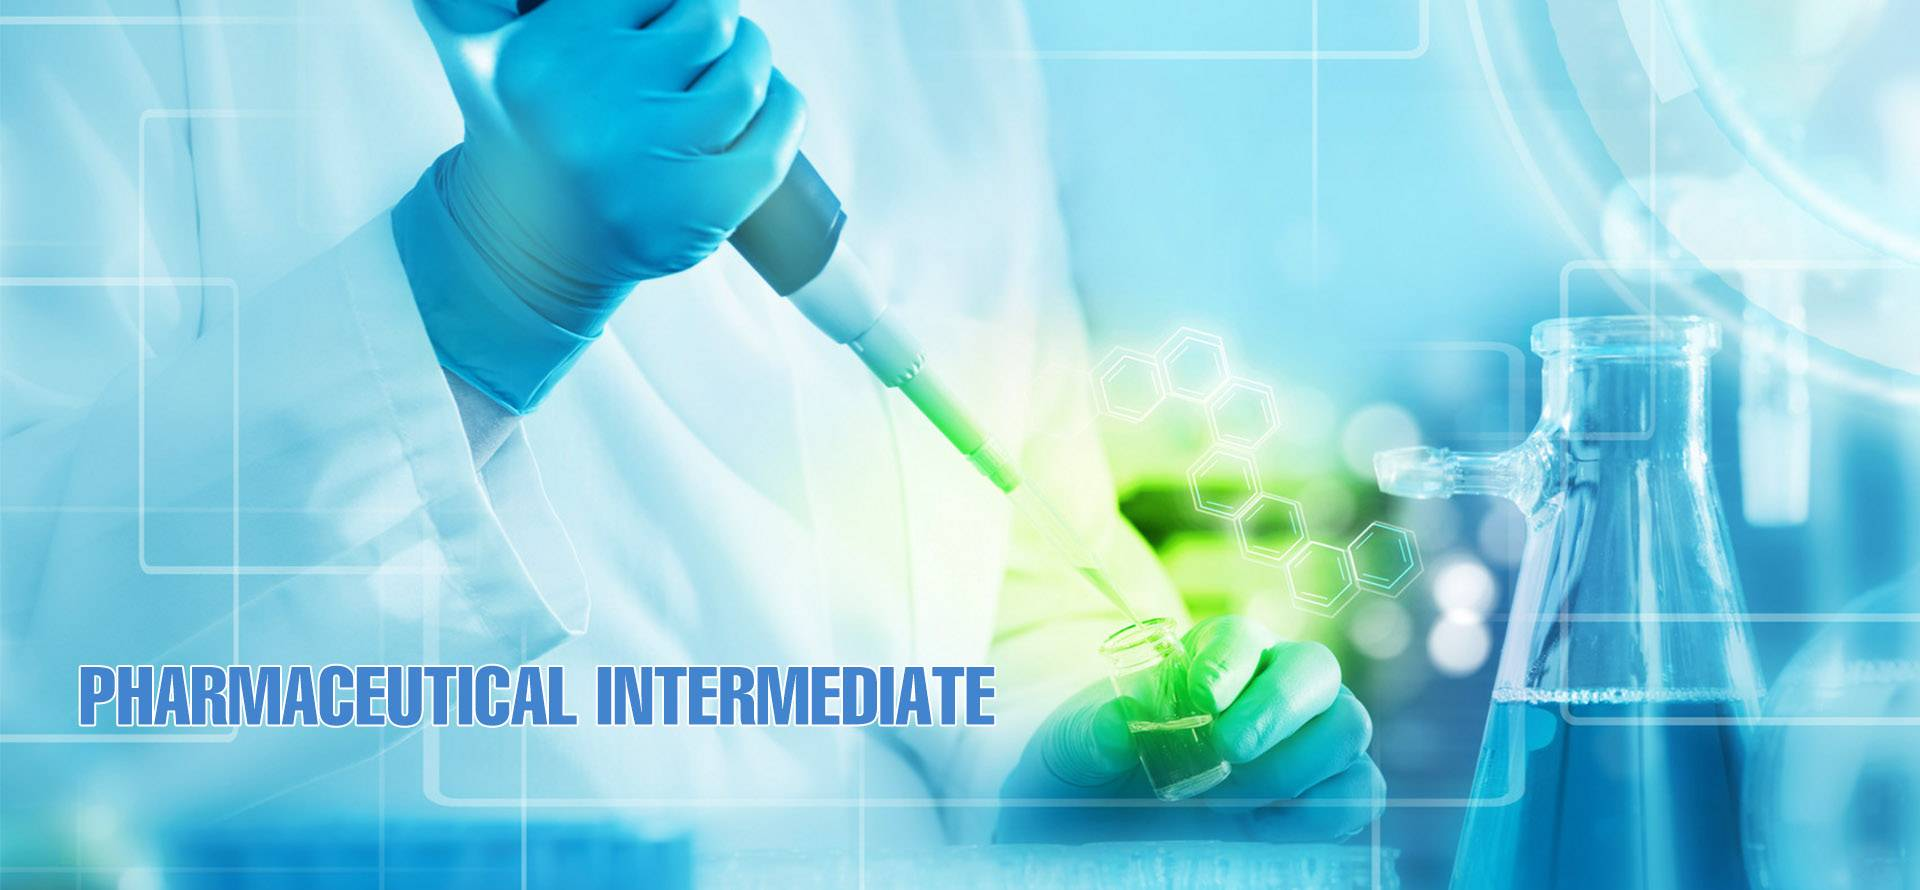 PHARMACEUTICAL INTERMEDIATE